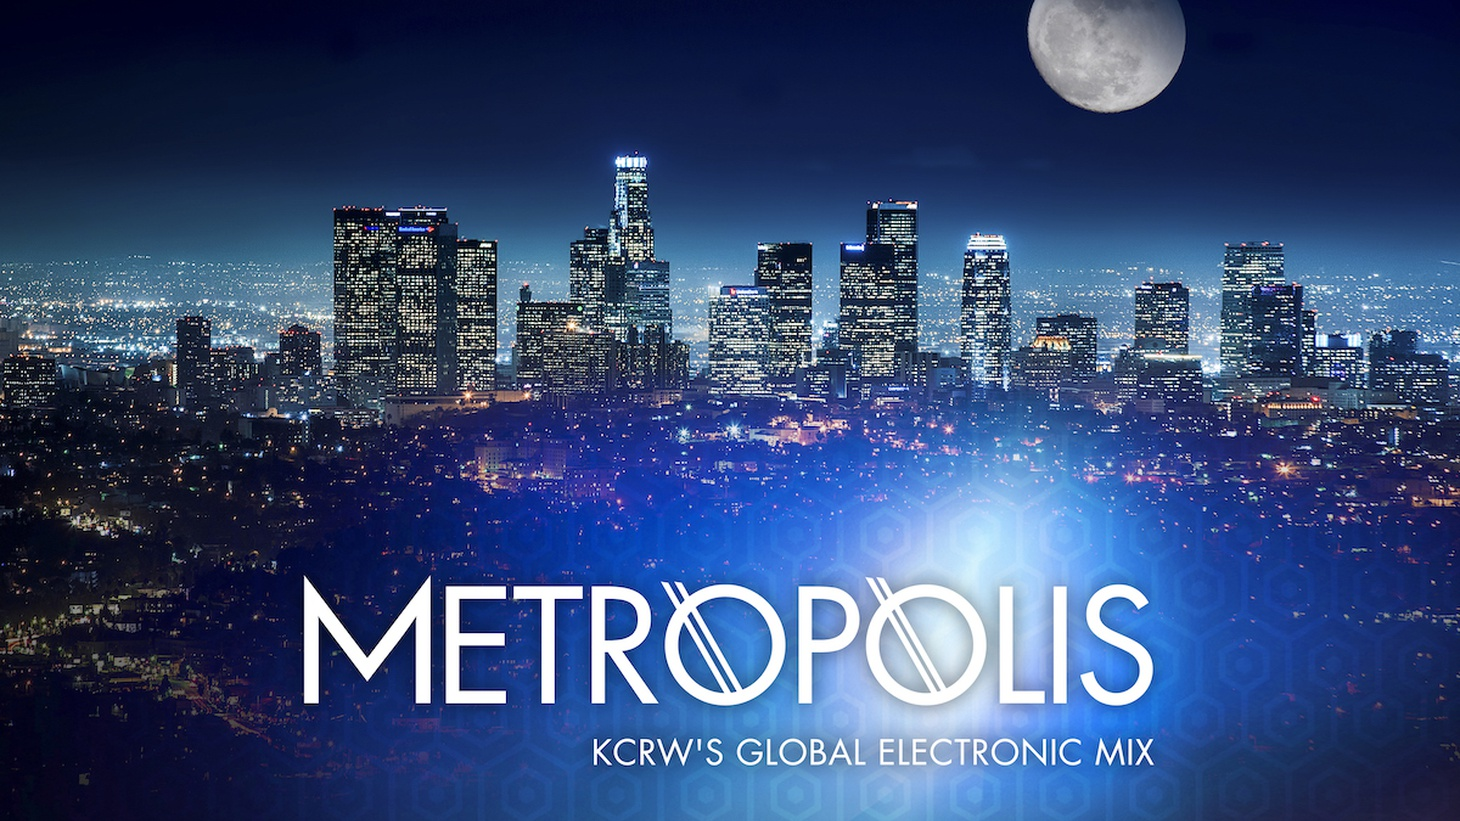 One of the godfathers of house music, Francois K, will be Jason's guest on Metropolis Friday, June 2 in the 9 o'clock hour. With a curriculum vitae longer than your arm, we'll stick to the barest essentials:  A principal at New York-based label Wave Music, a highly-sought-after producer/remixer for more than fifteen years,  a founder/resident DJ of the legendary New York Sunday afternoon house weekly Body & Soul, and a resident DJ in the early '80's at the Paradise Garage, the club that started it all.